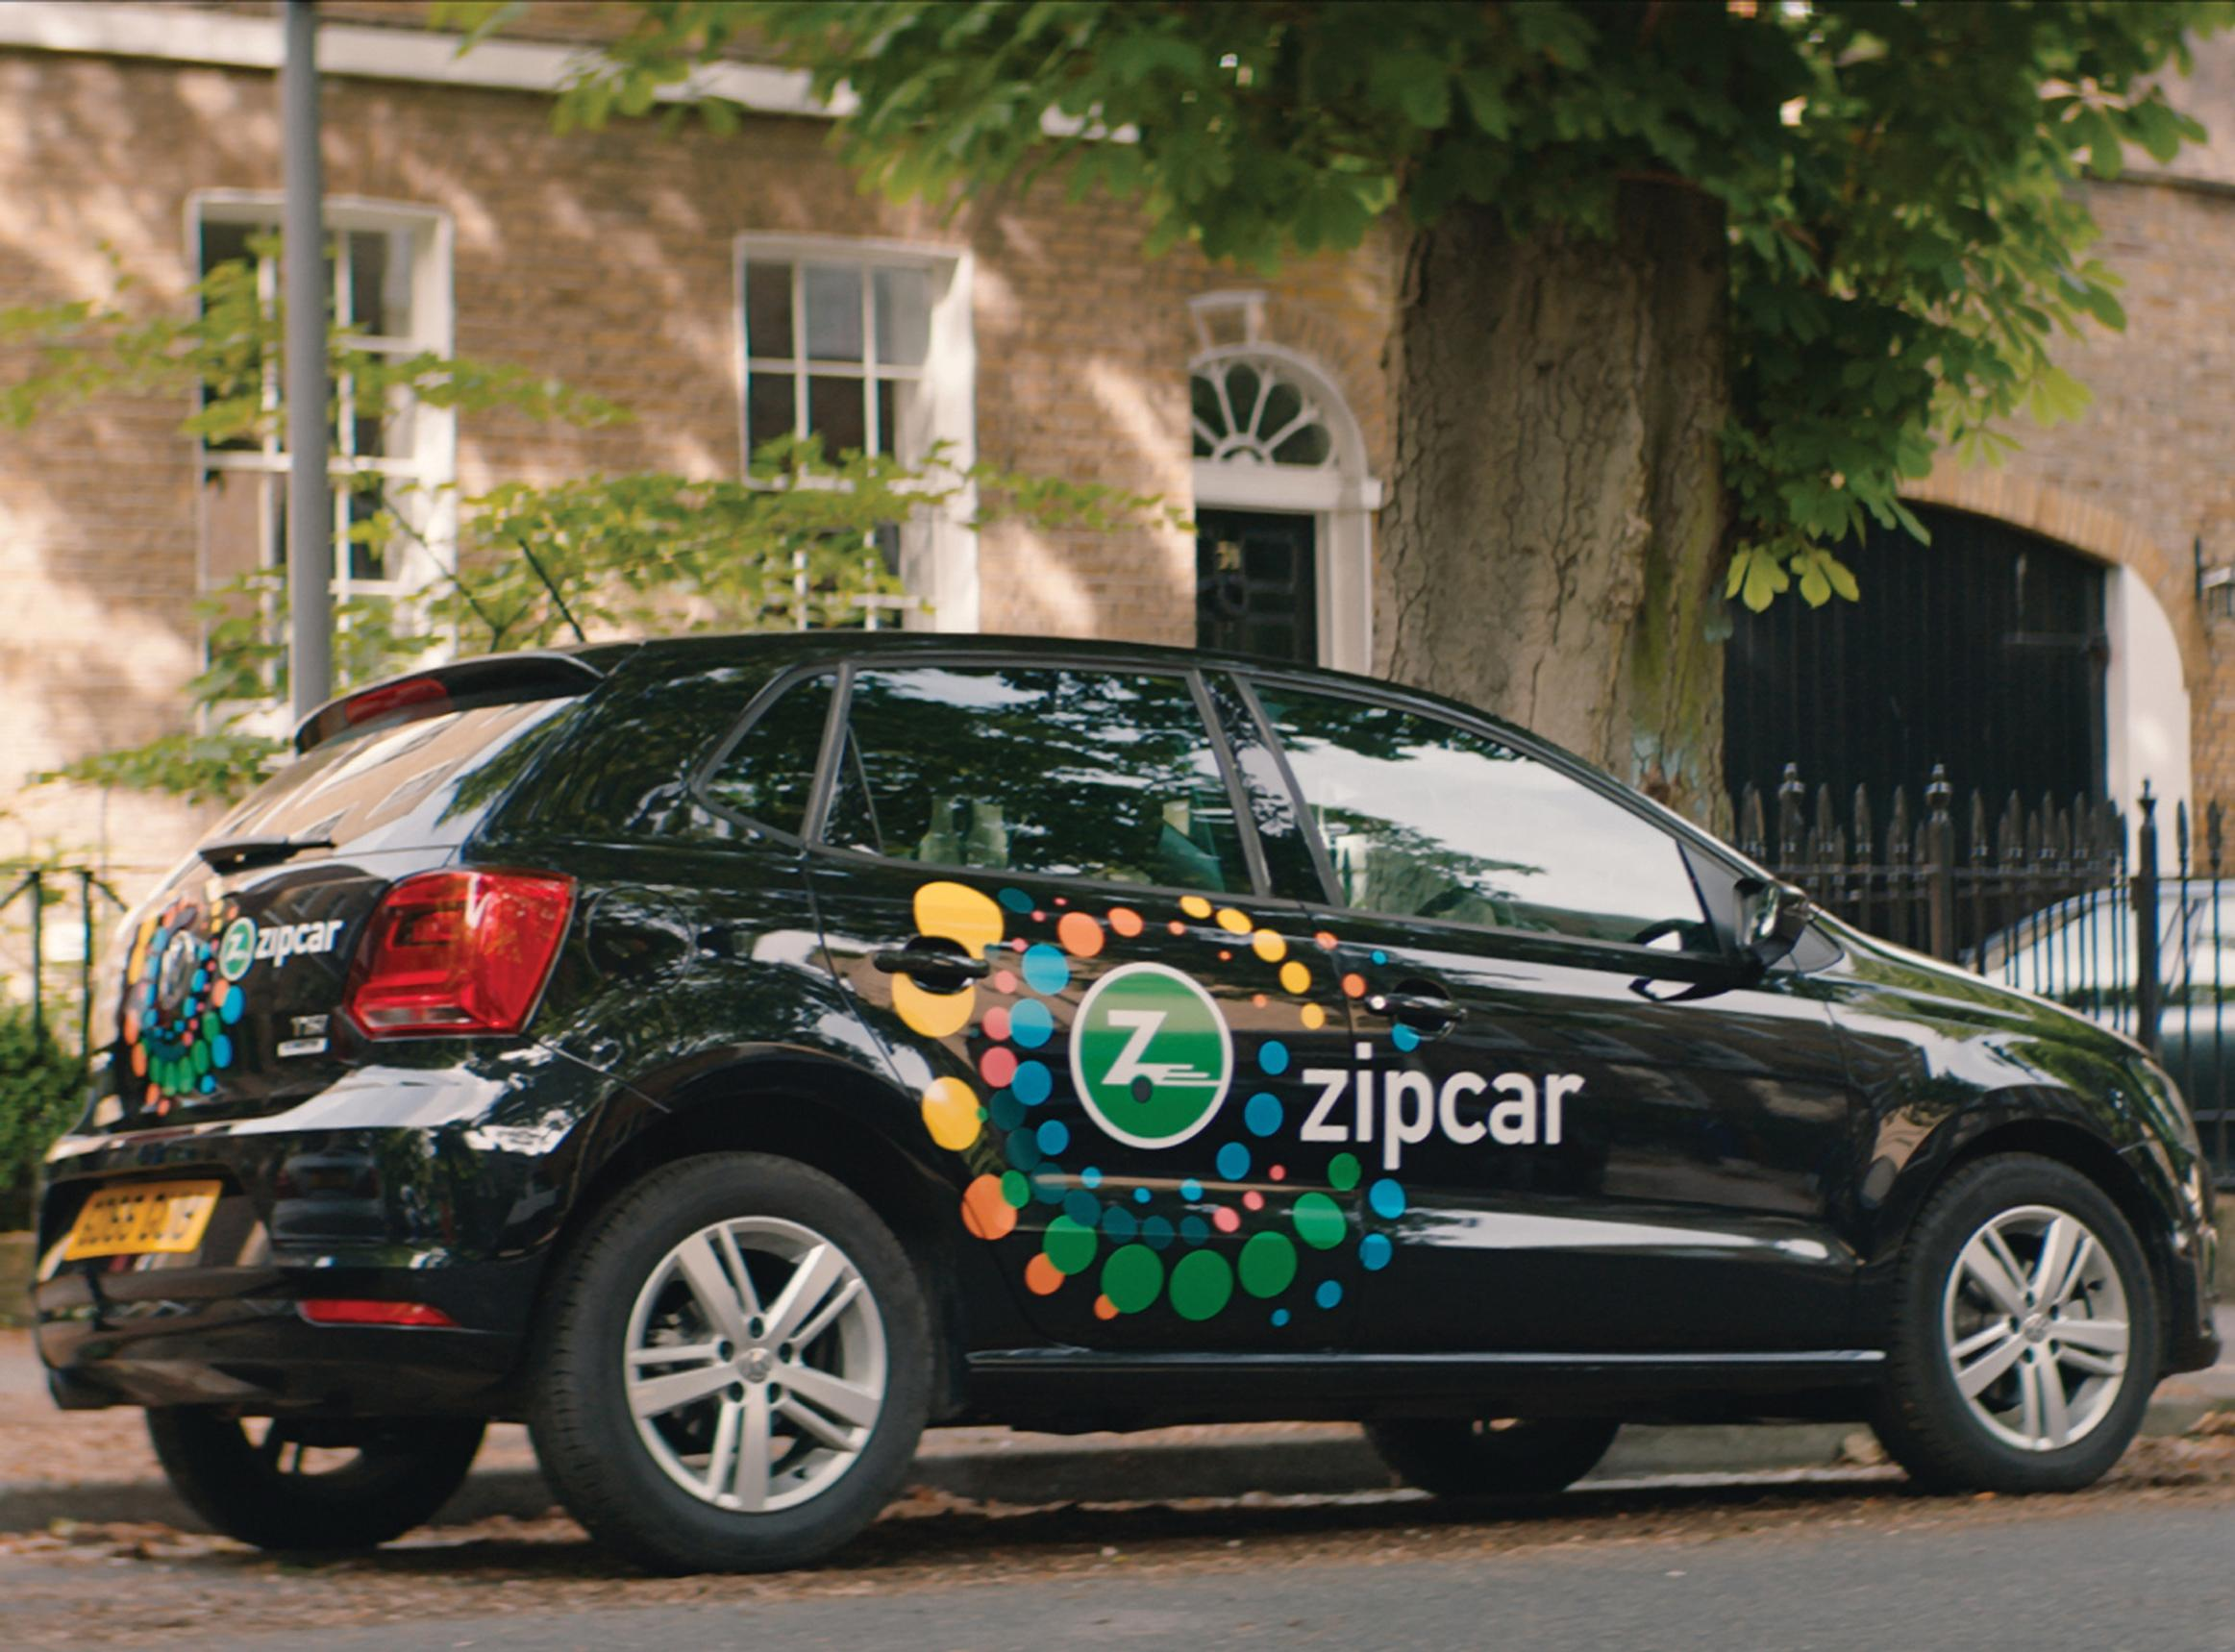 Zipcar: plan fails to recognise benefits of car clubs